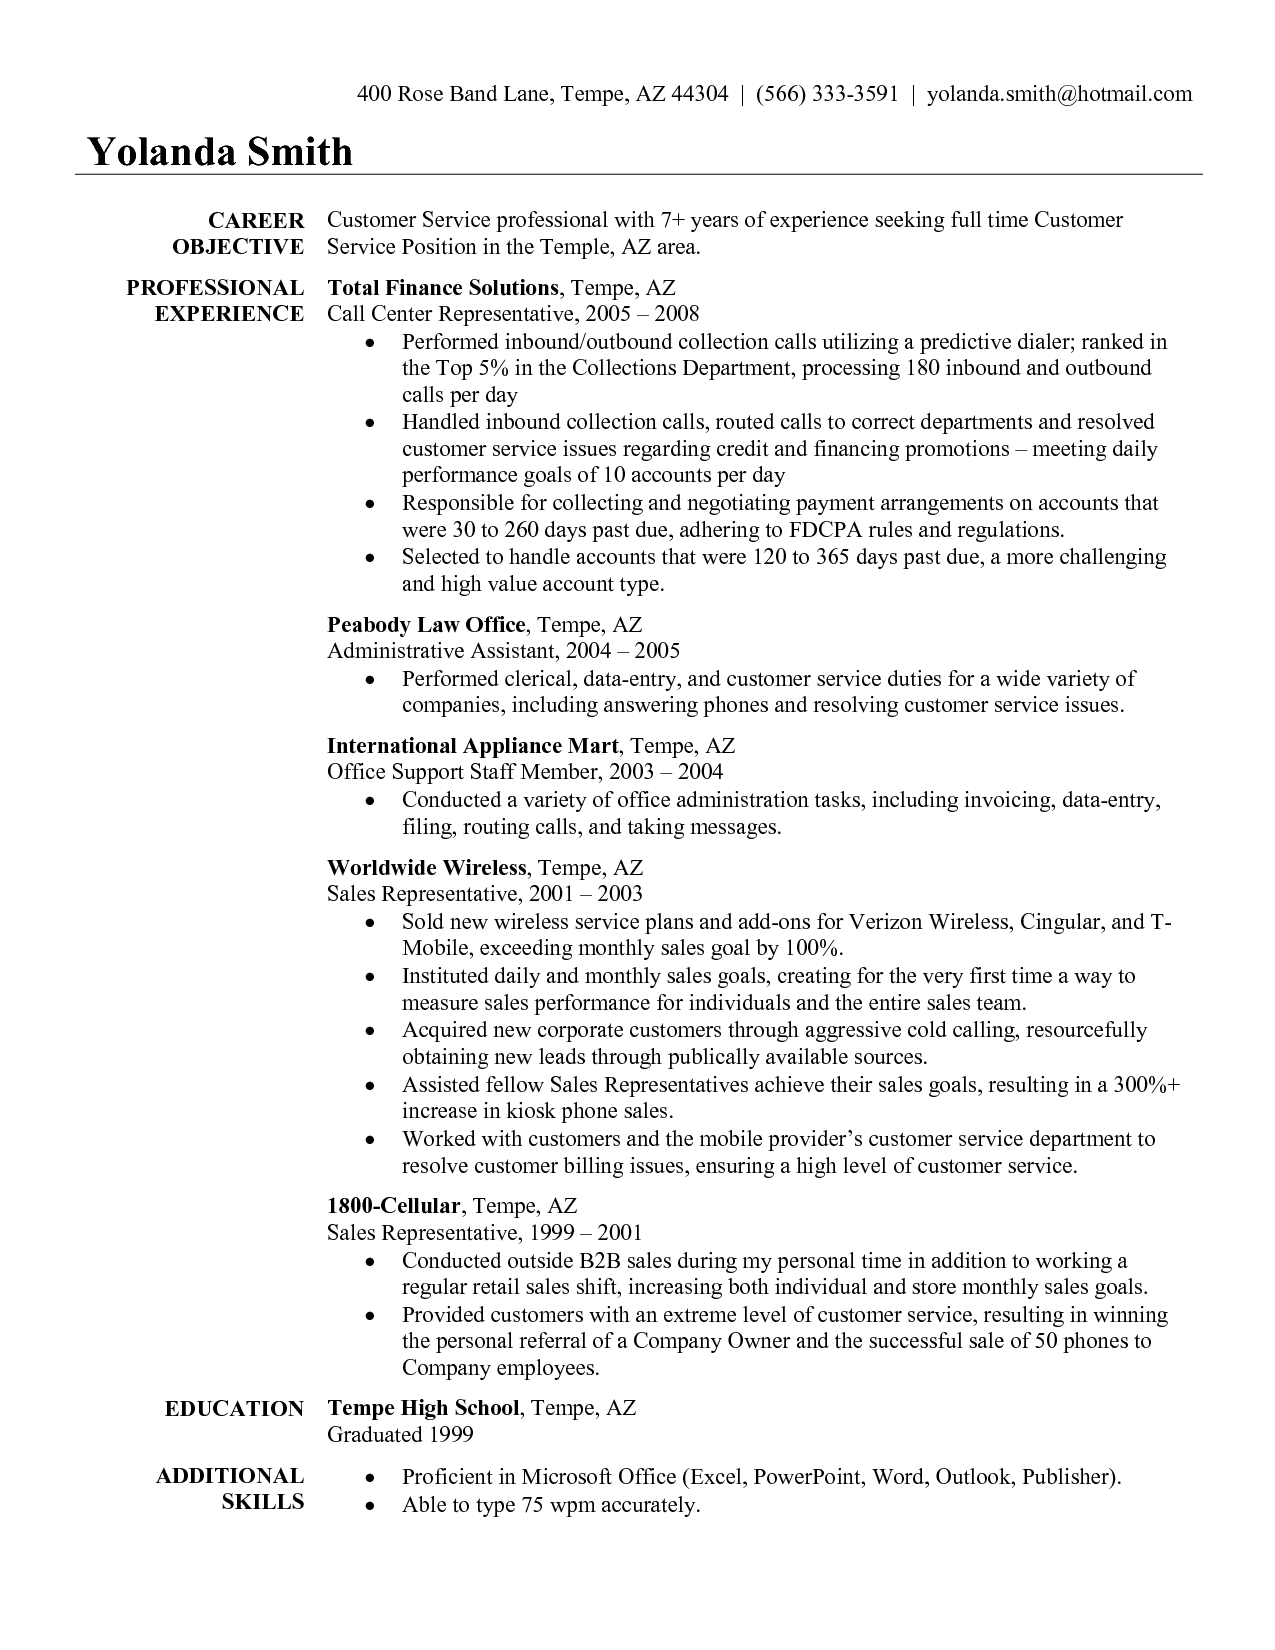 Examples Of Skills For Resume Inspiration Traffic Customer Resume Examplescustomer Service Resume Examples .